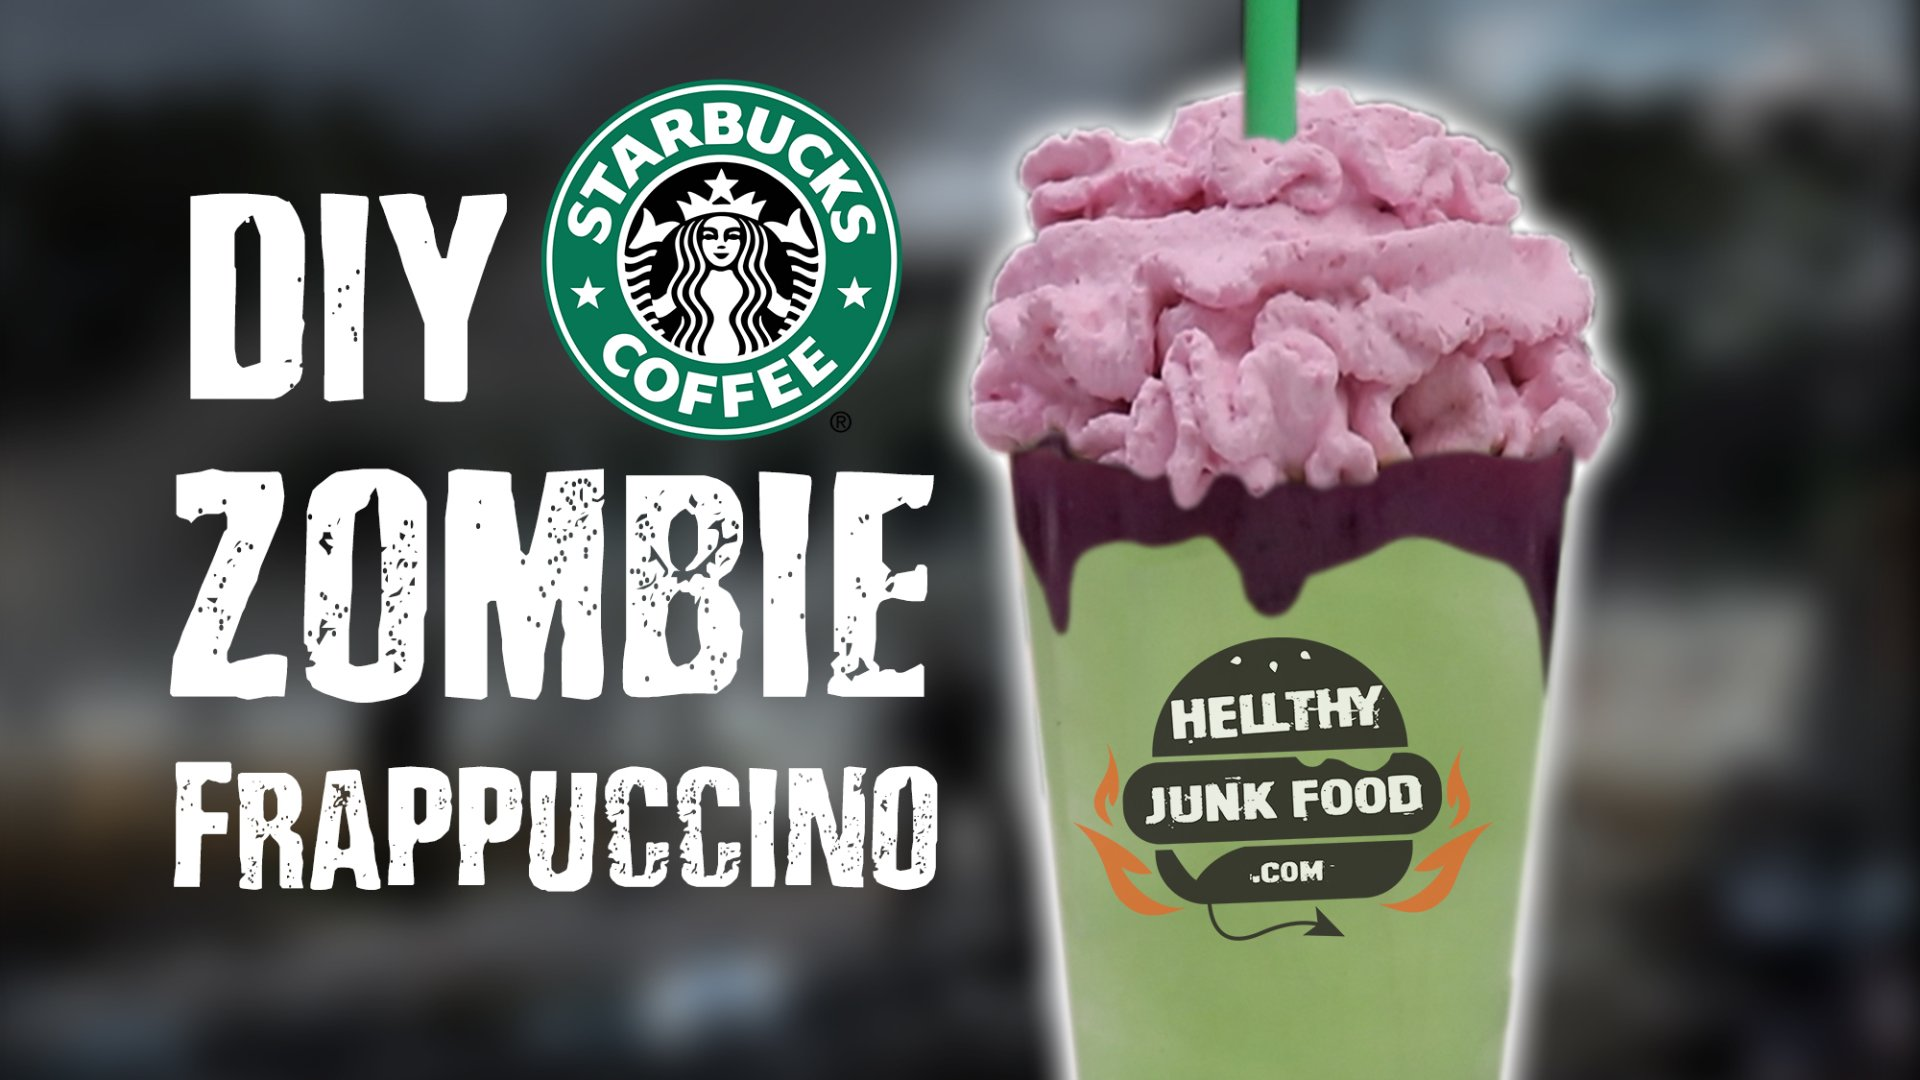 Diy Zombie Frappuccino Leaked Vs Actual